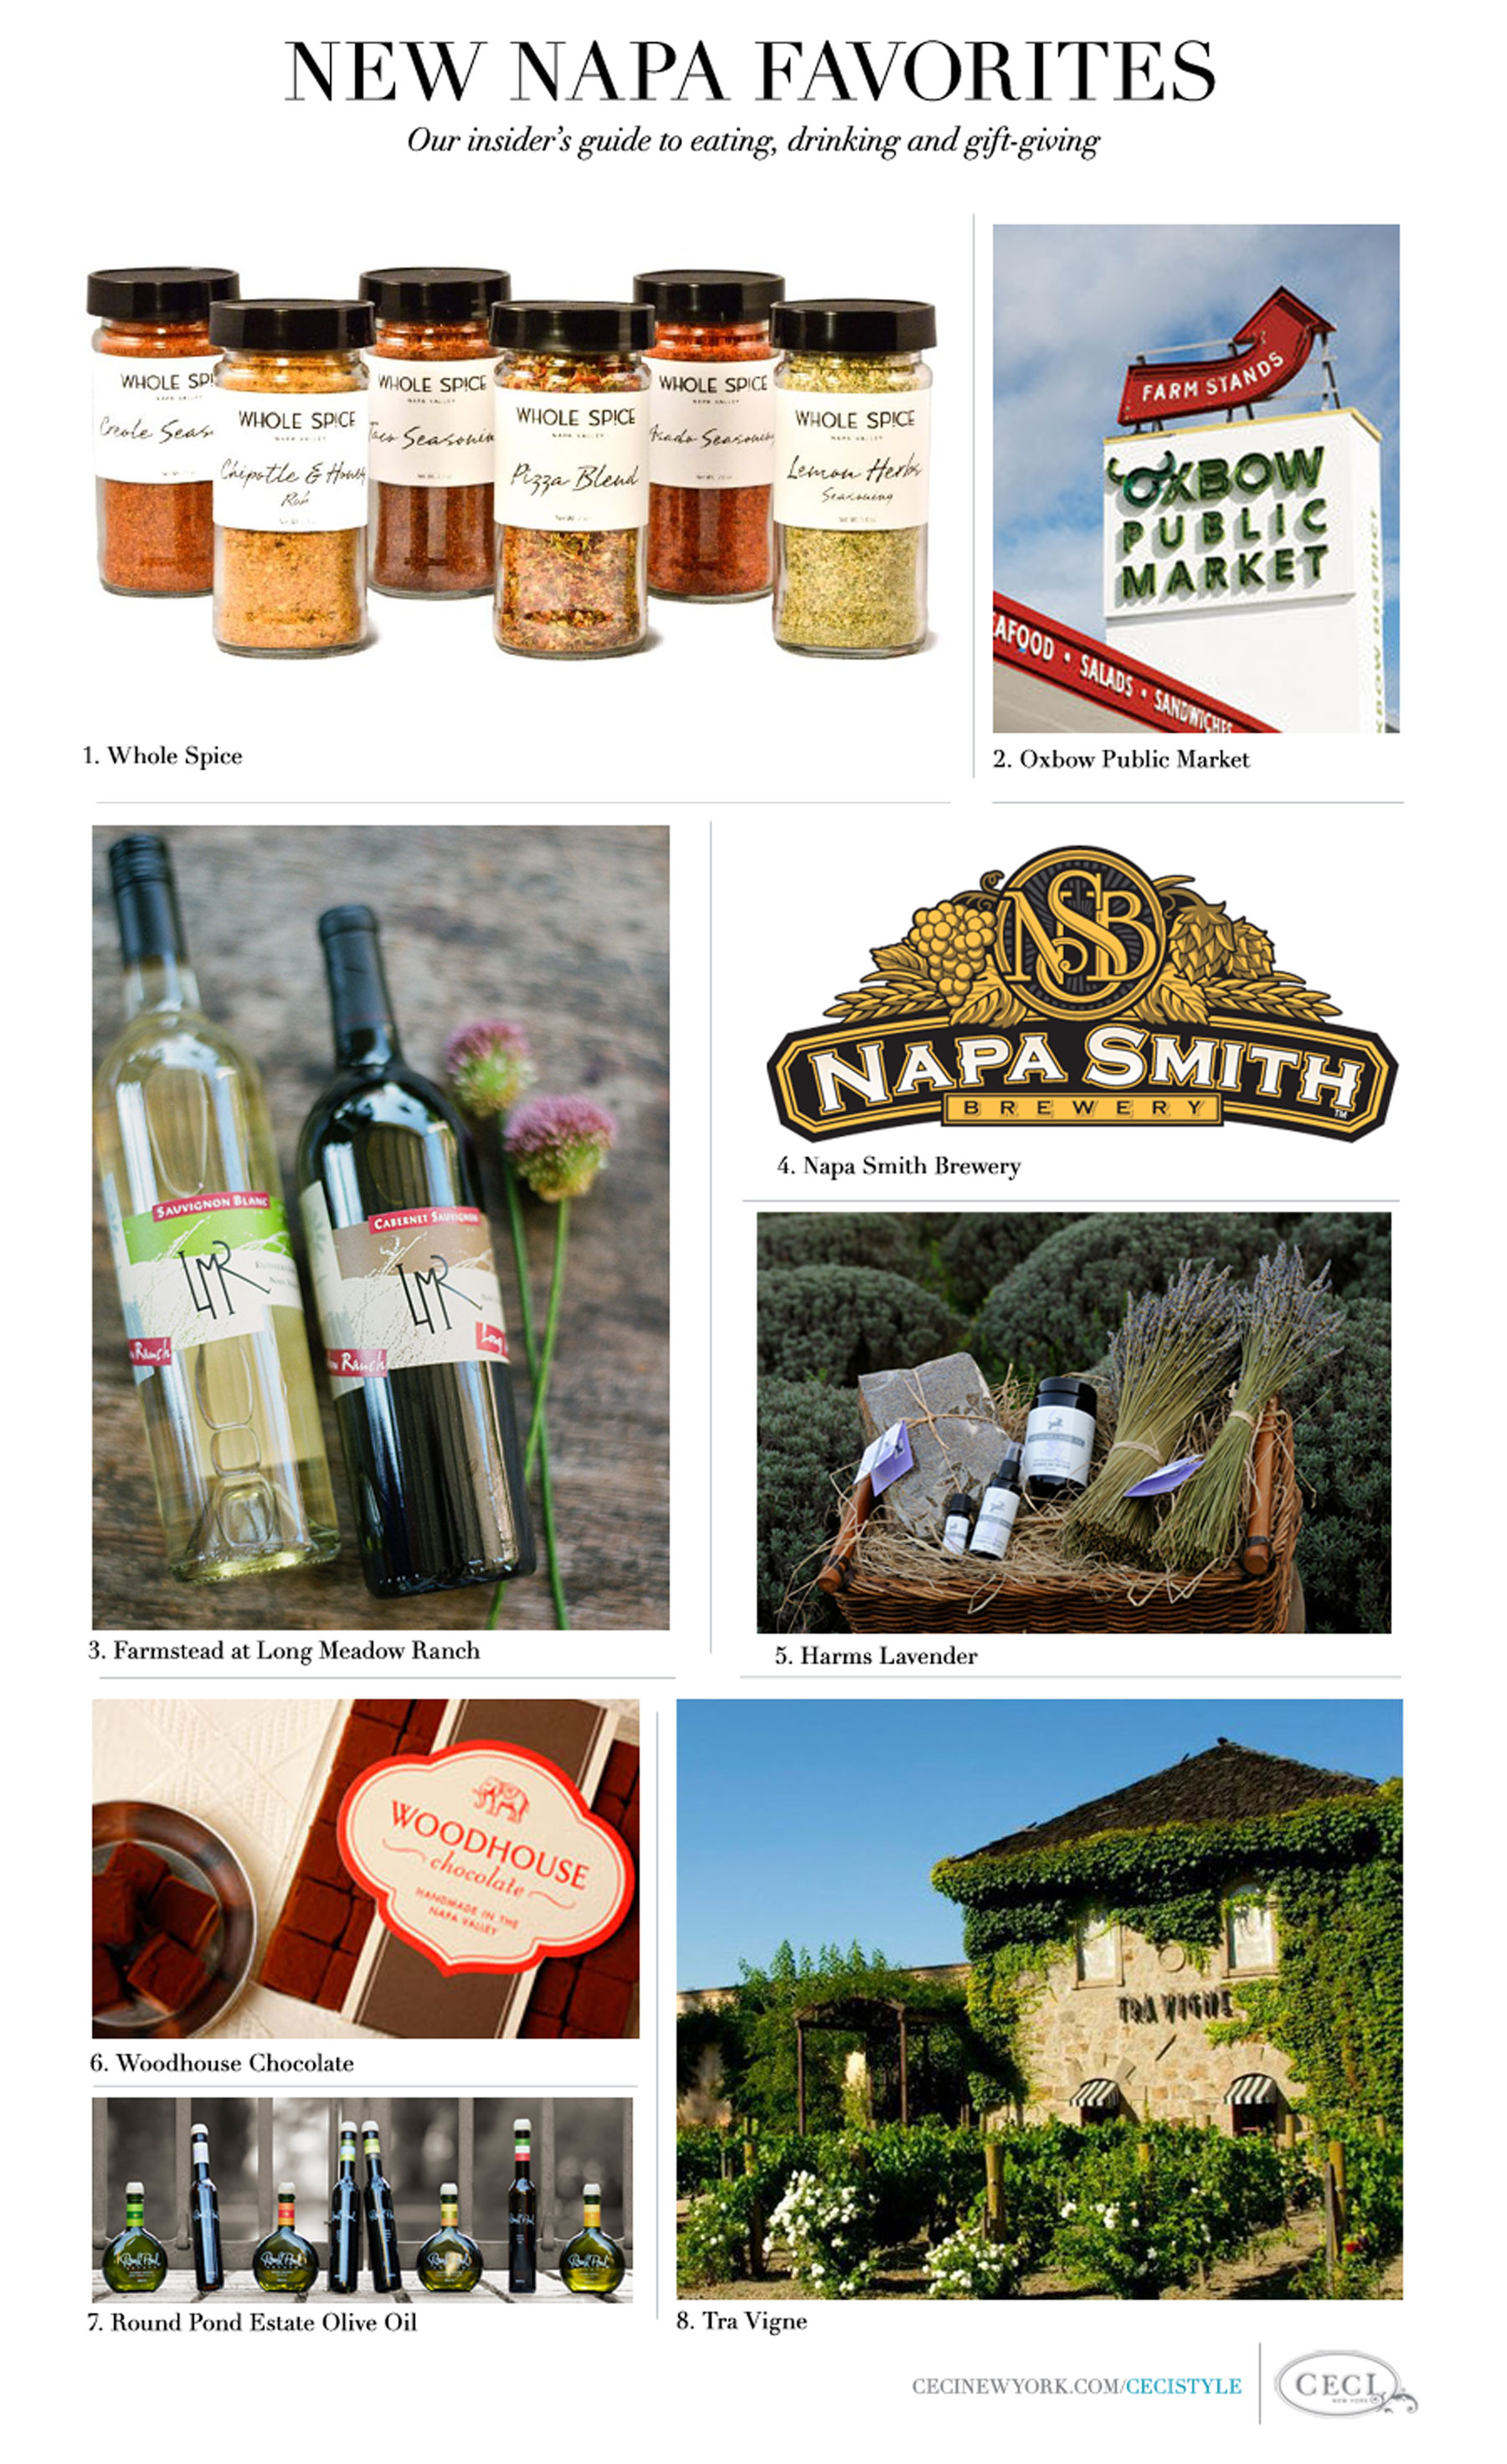 New Napa Favorites - Our insider's guide to eating, drinking and gift-giving